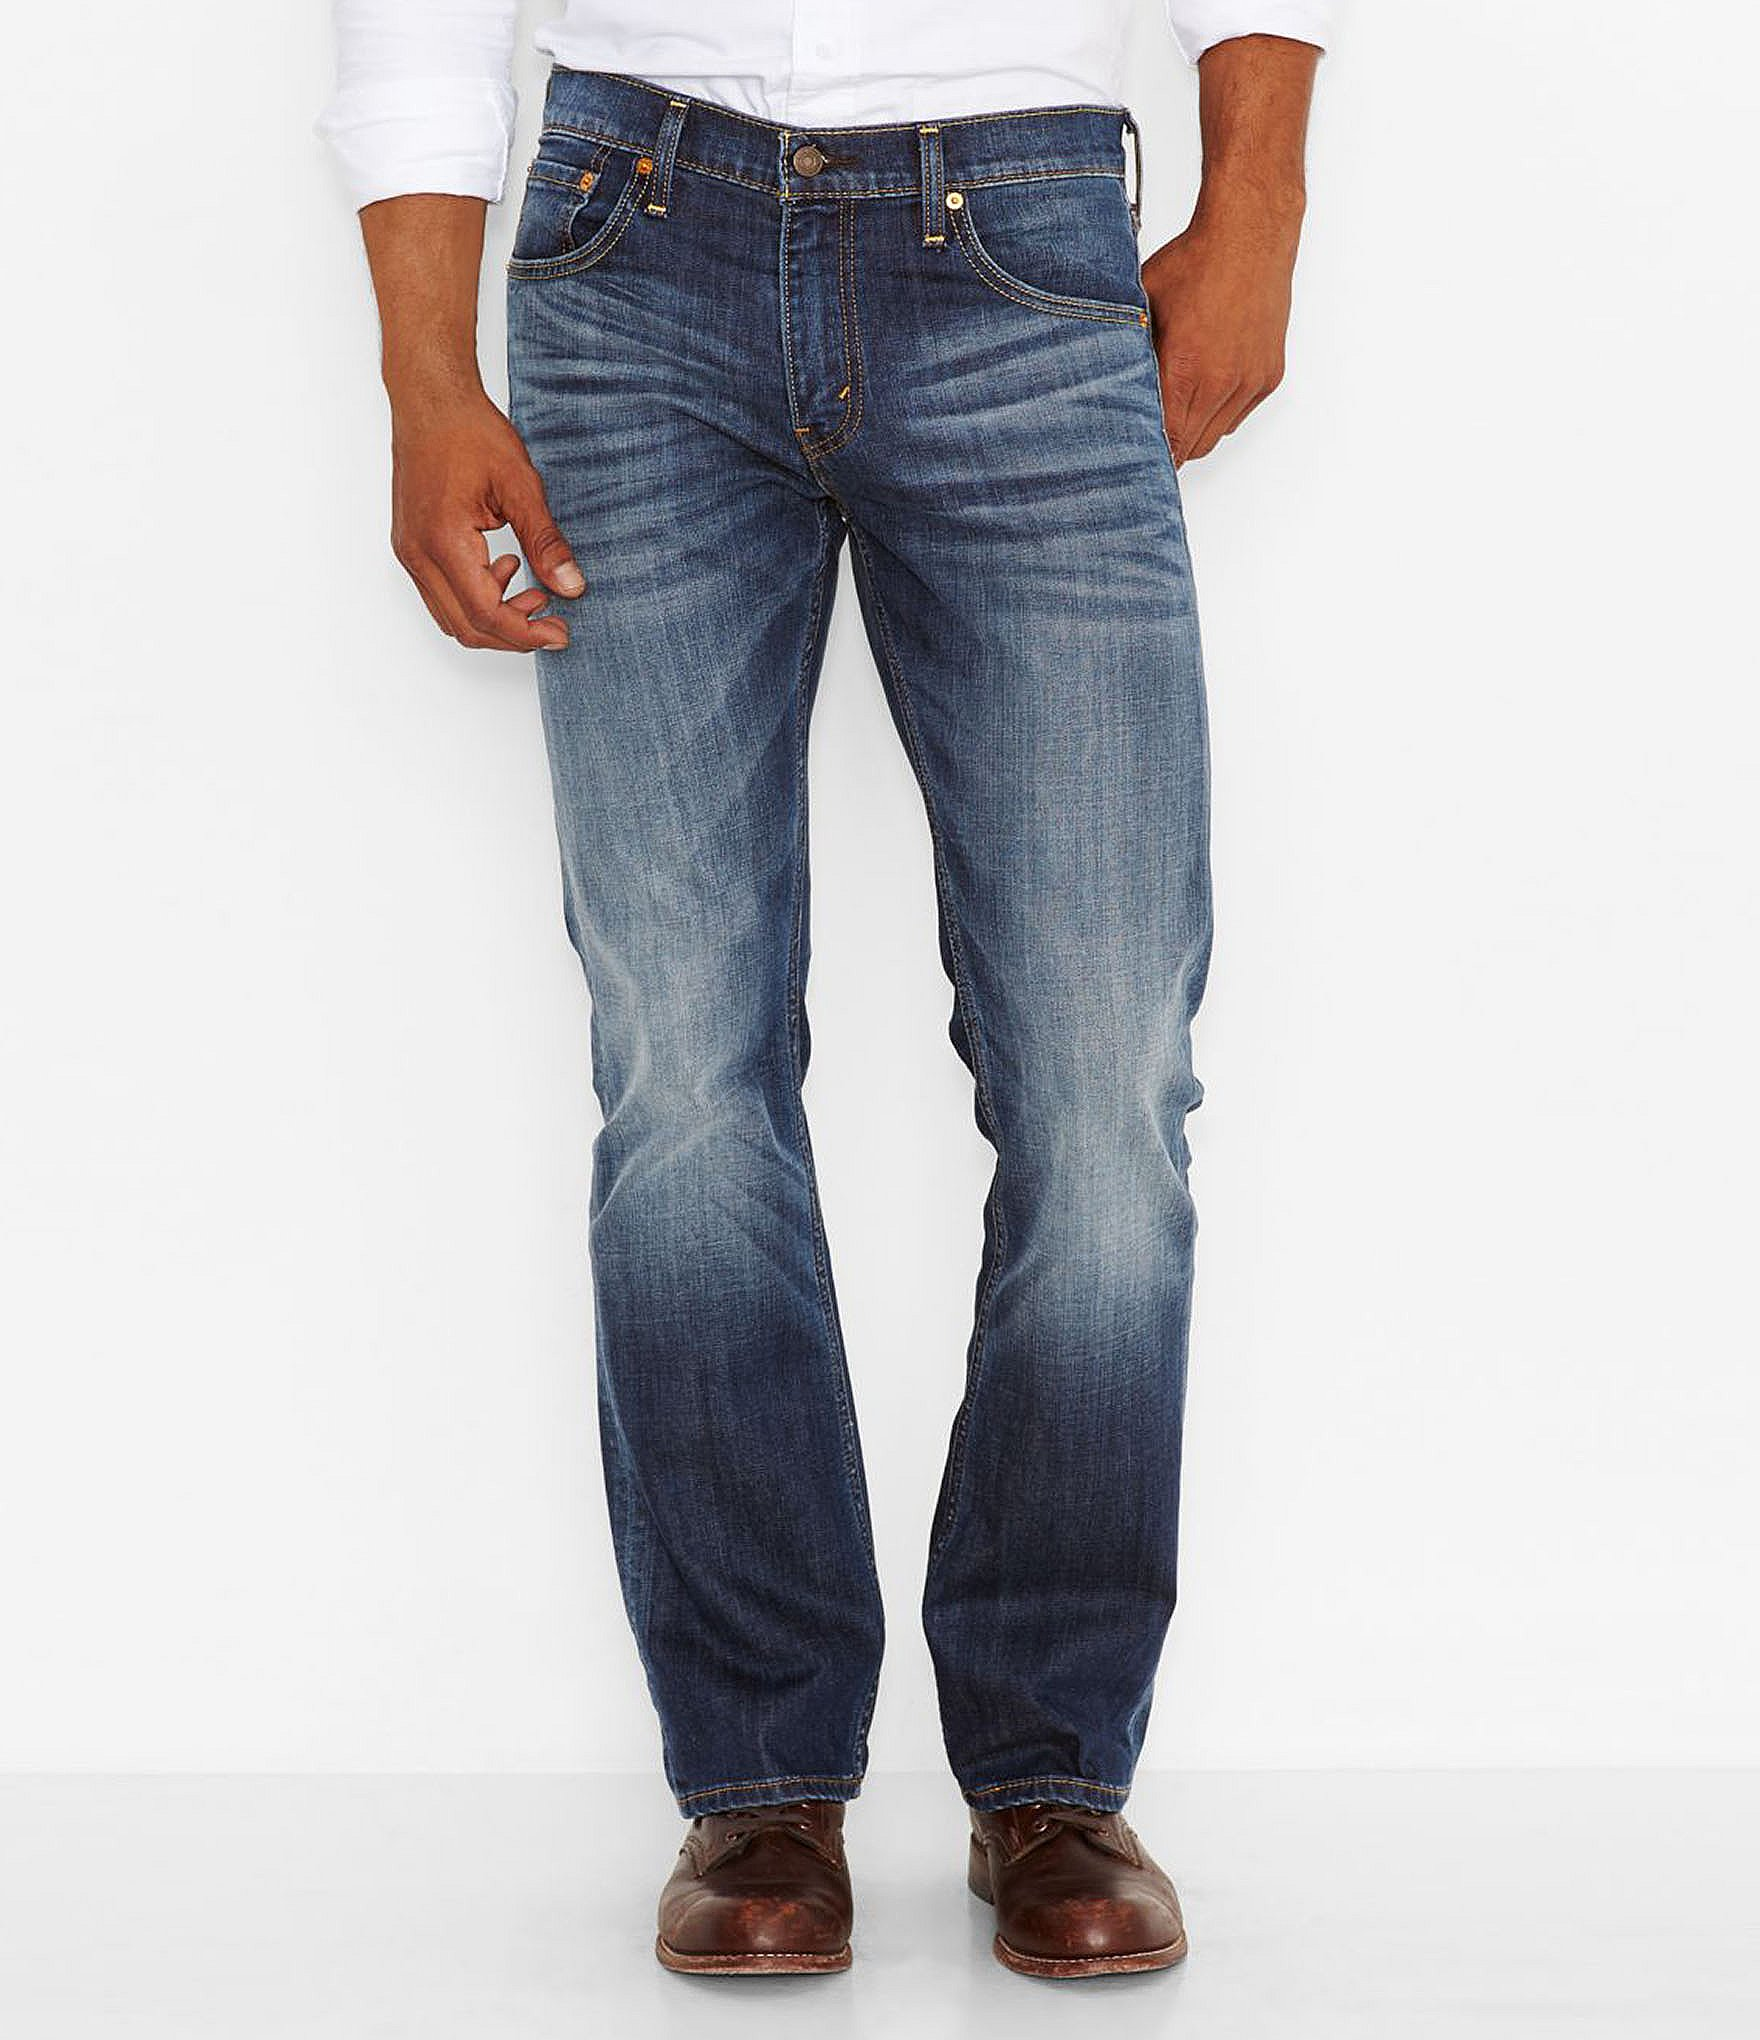 Mens Bootcut Jeans – Bootcuts in different versions